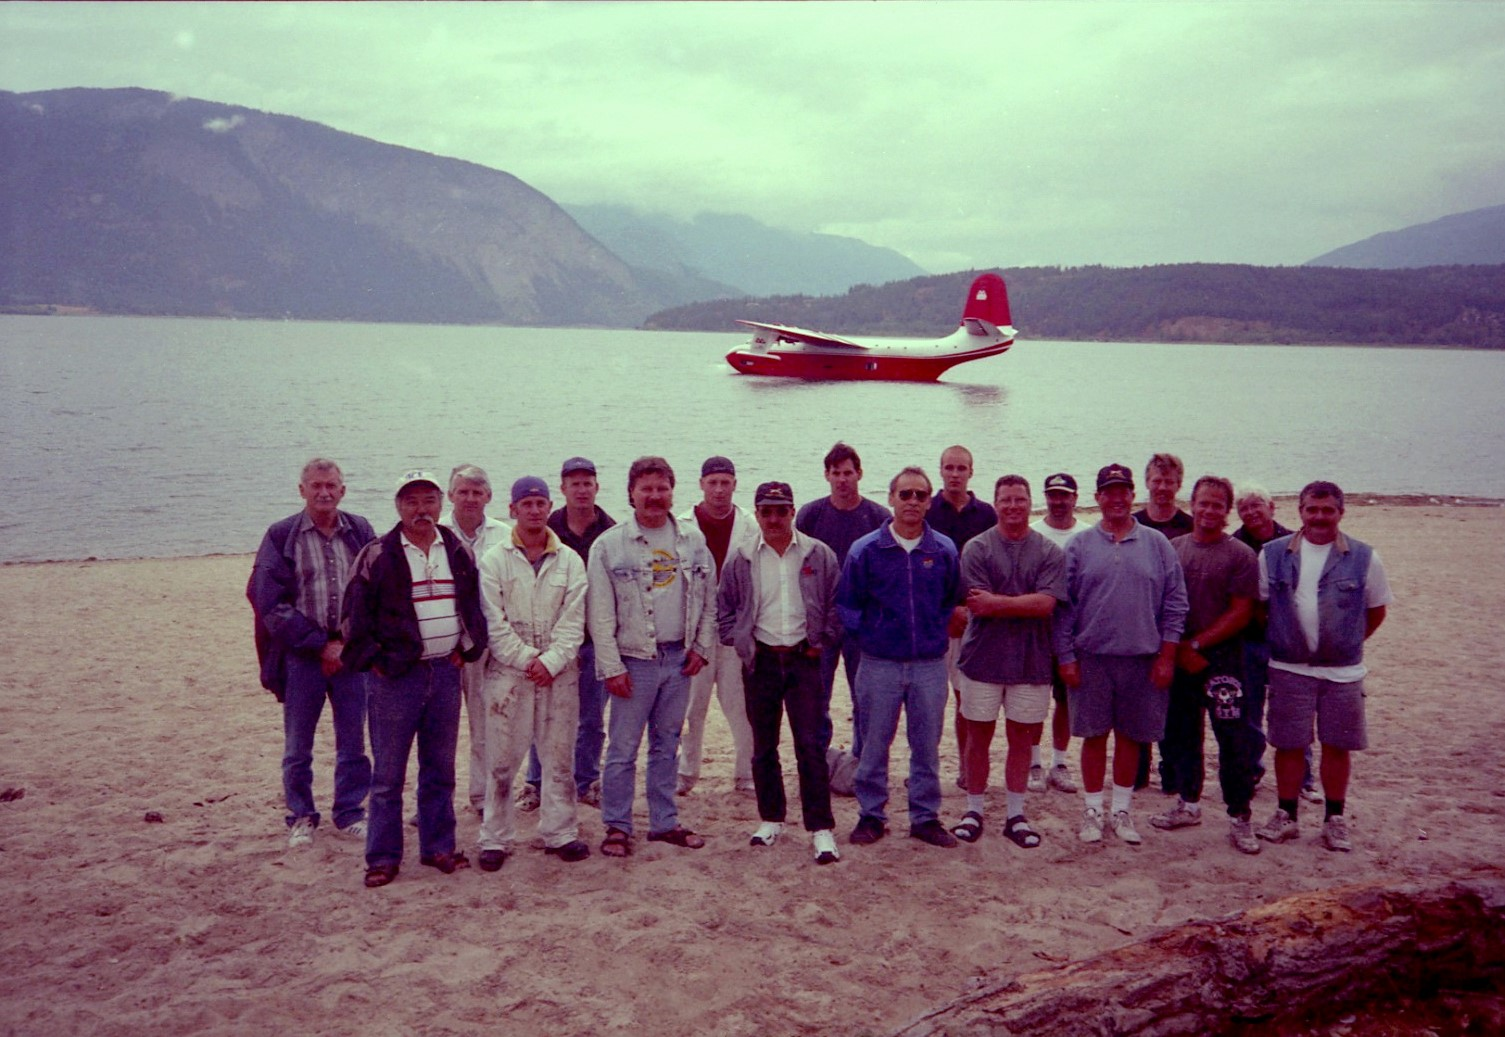 18 men stand on shore in front of a float aeroplane.